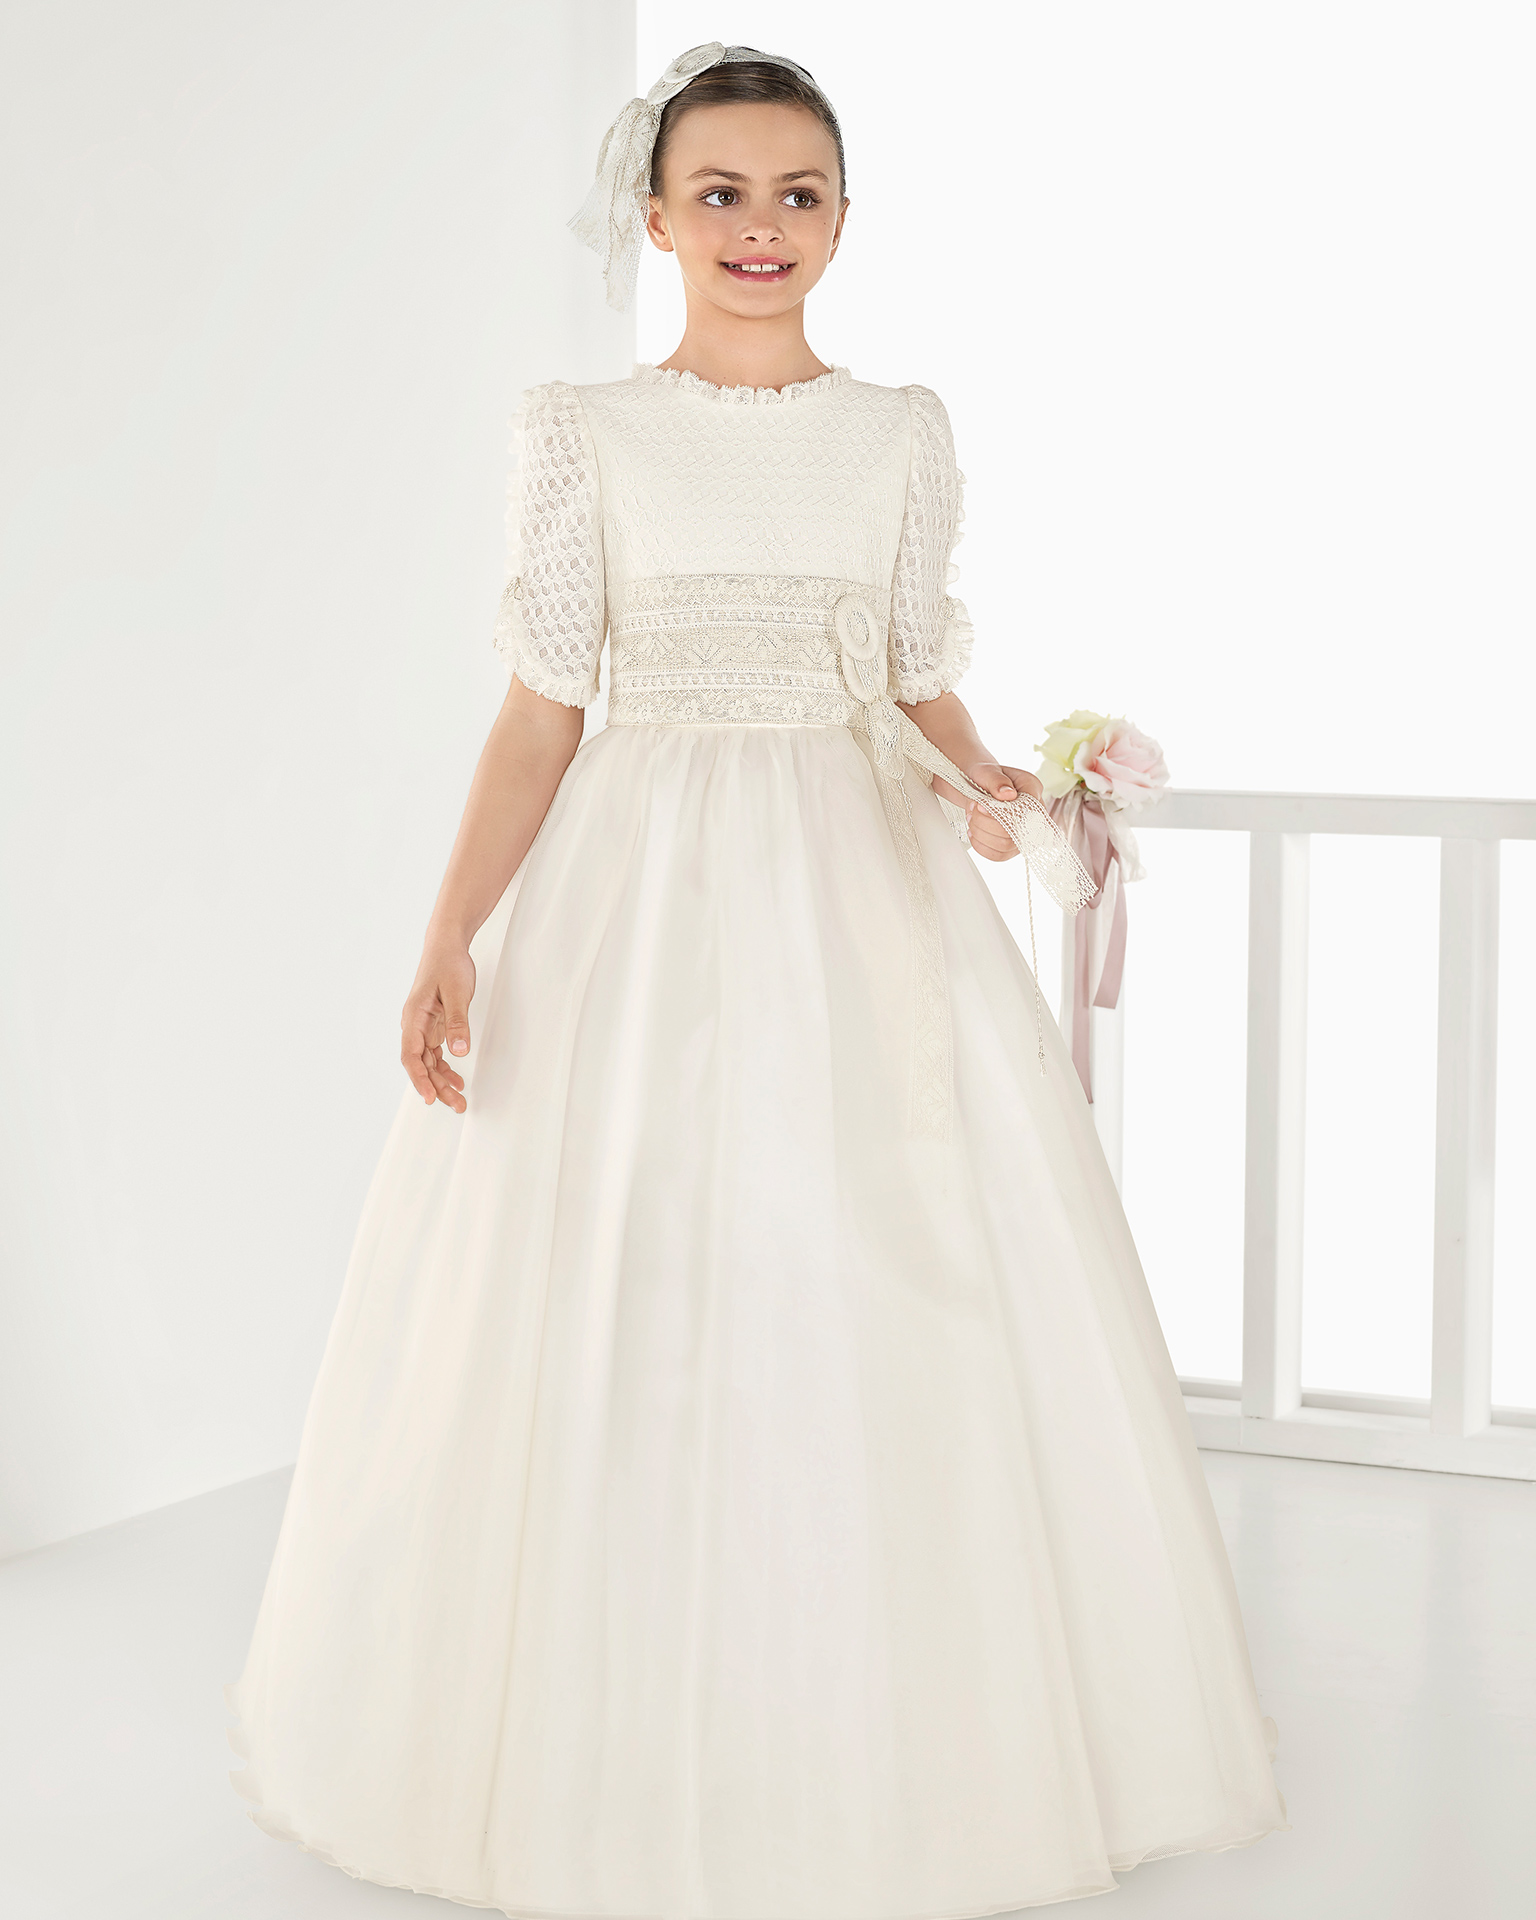 Ballgown-style matt organza First Communion or bridesmaid's dress with regular waist, in ivory. 2018 AIRE COMUNION Collection.